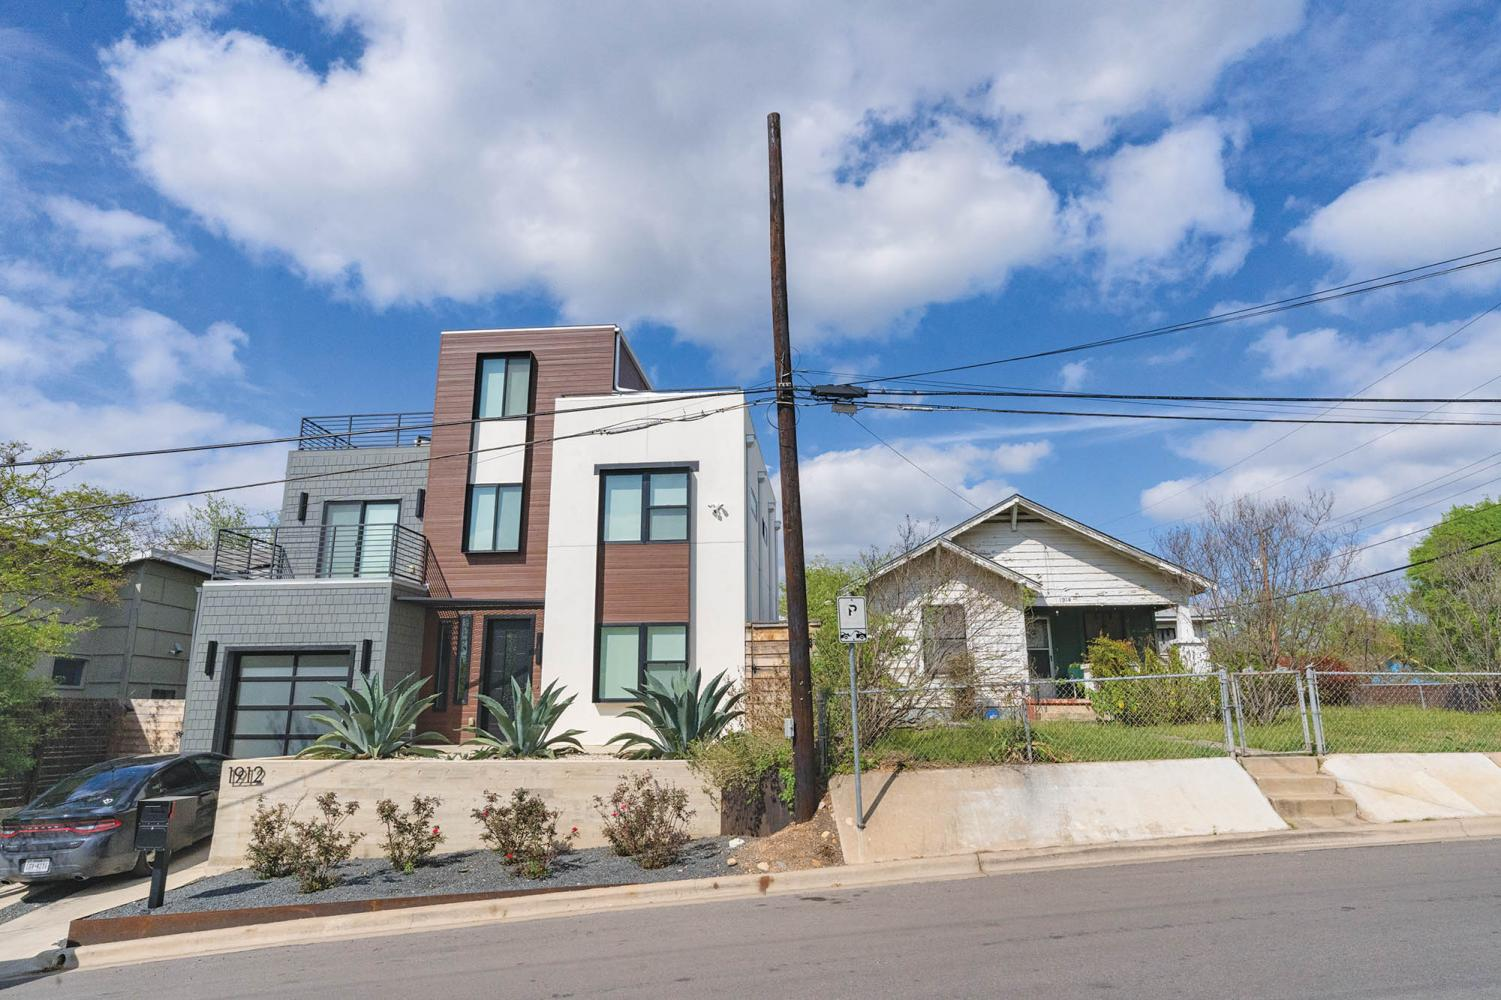 In Austin, there are 16 neighborhoods that are actively gentrifying and 23 others that are at risk. East Austin is considered to be the most impacted by gentrification.